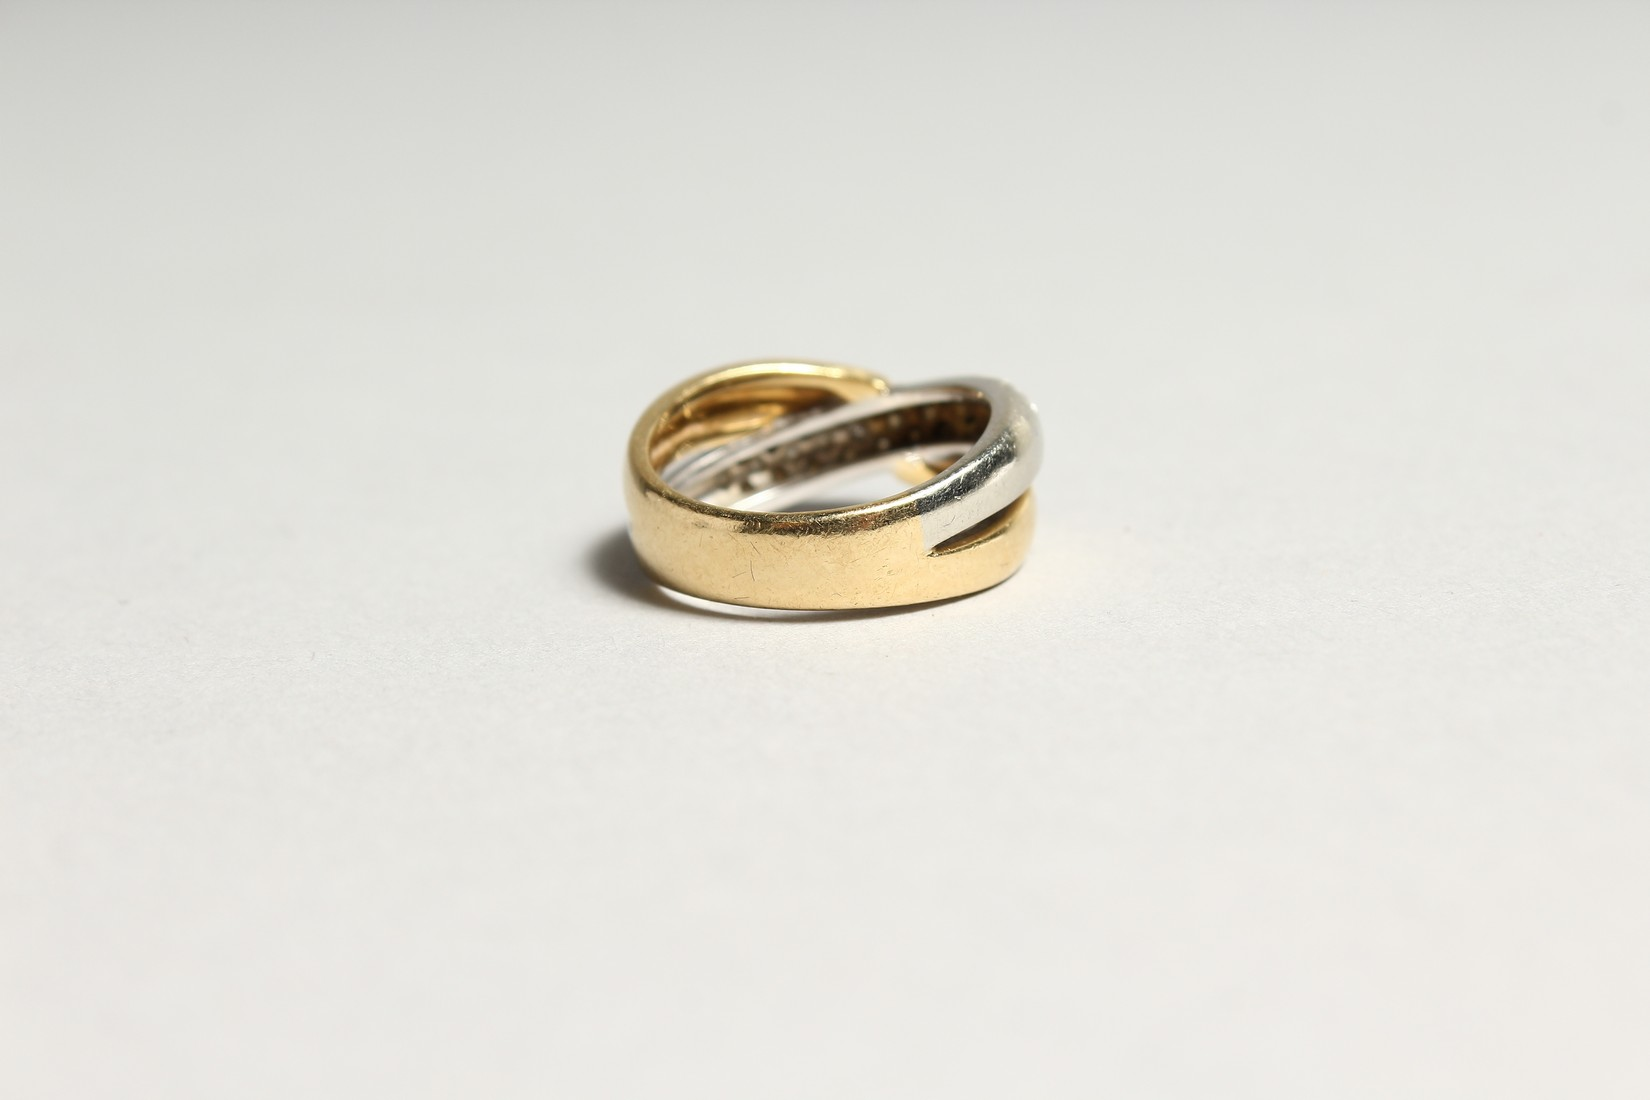 AN 18CT GOLD DIAMOND SET CROSS OVER RING - Image 3 of 6